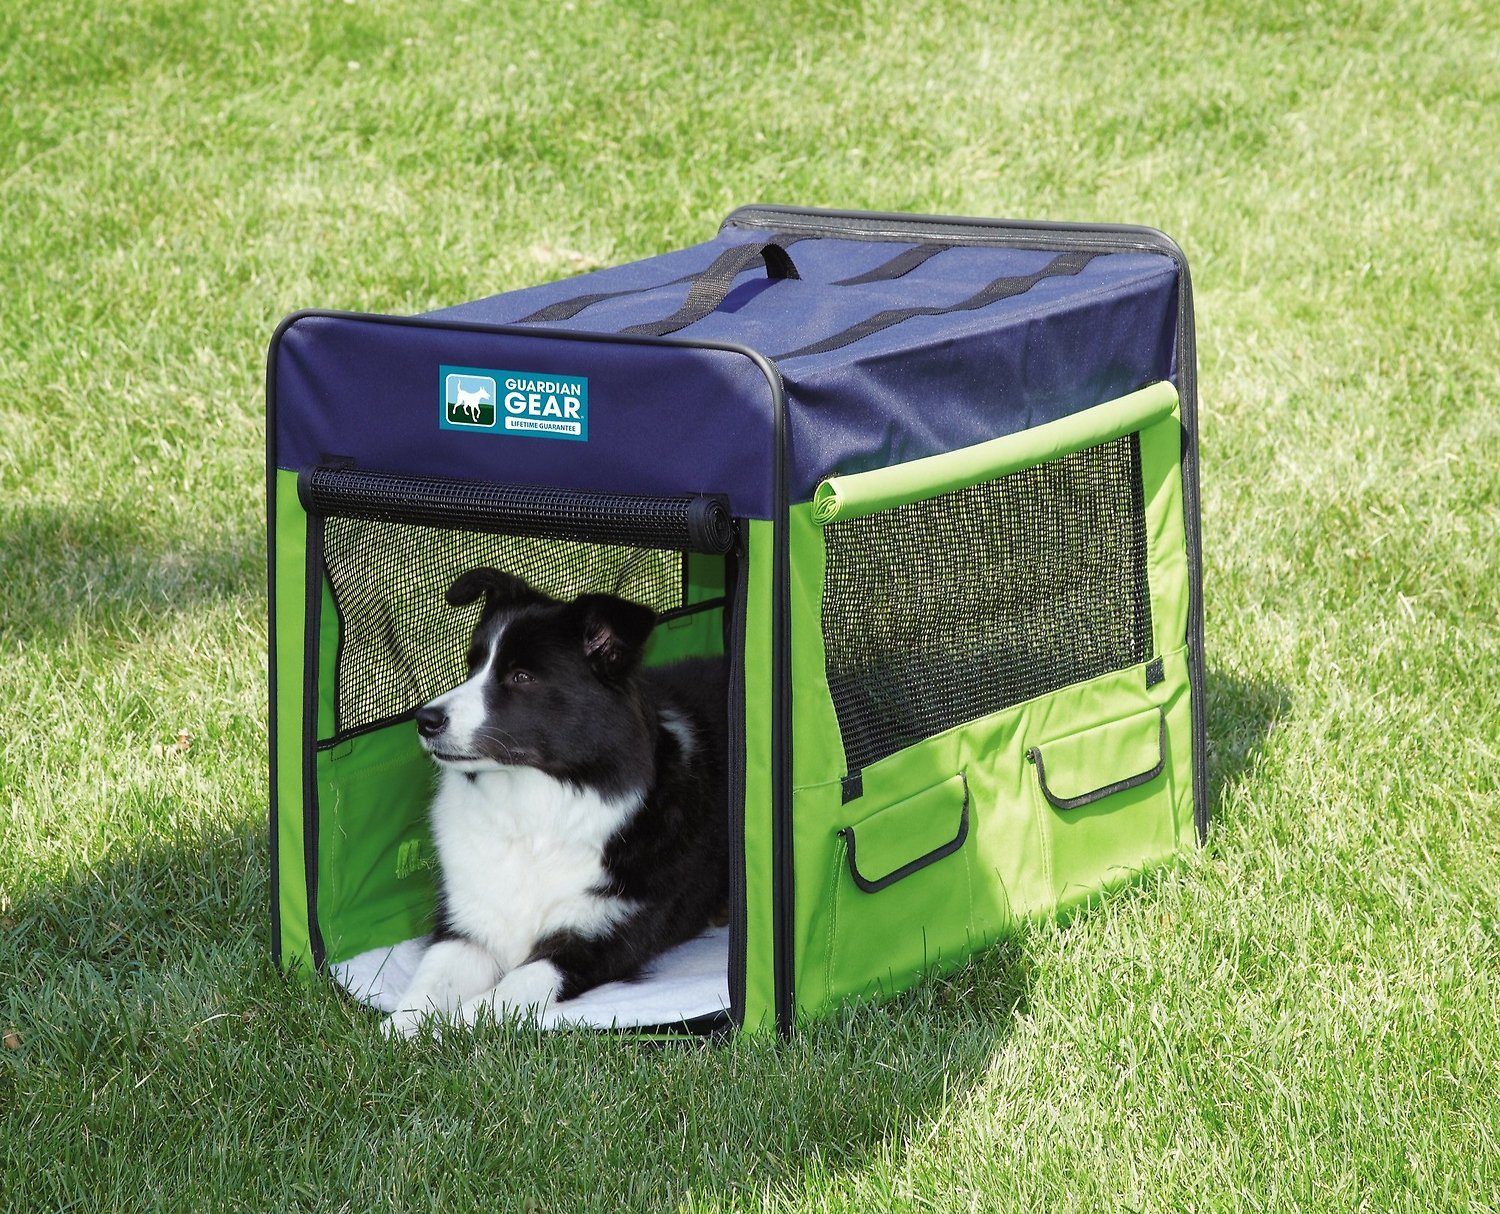 guardian gear collapsible dog crate - Soft Dog Crates